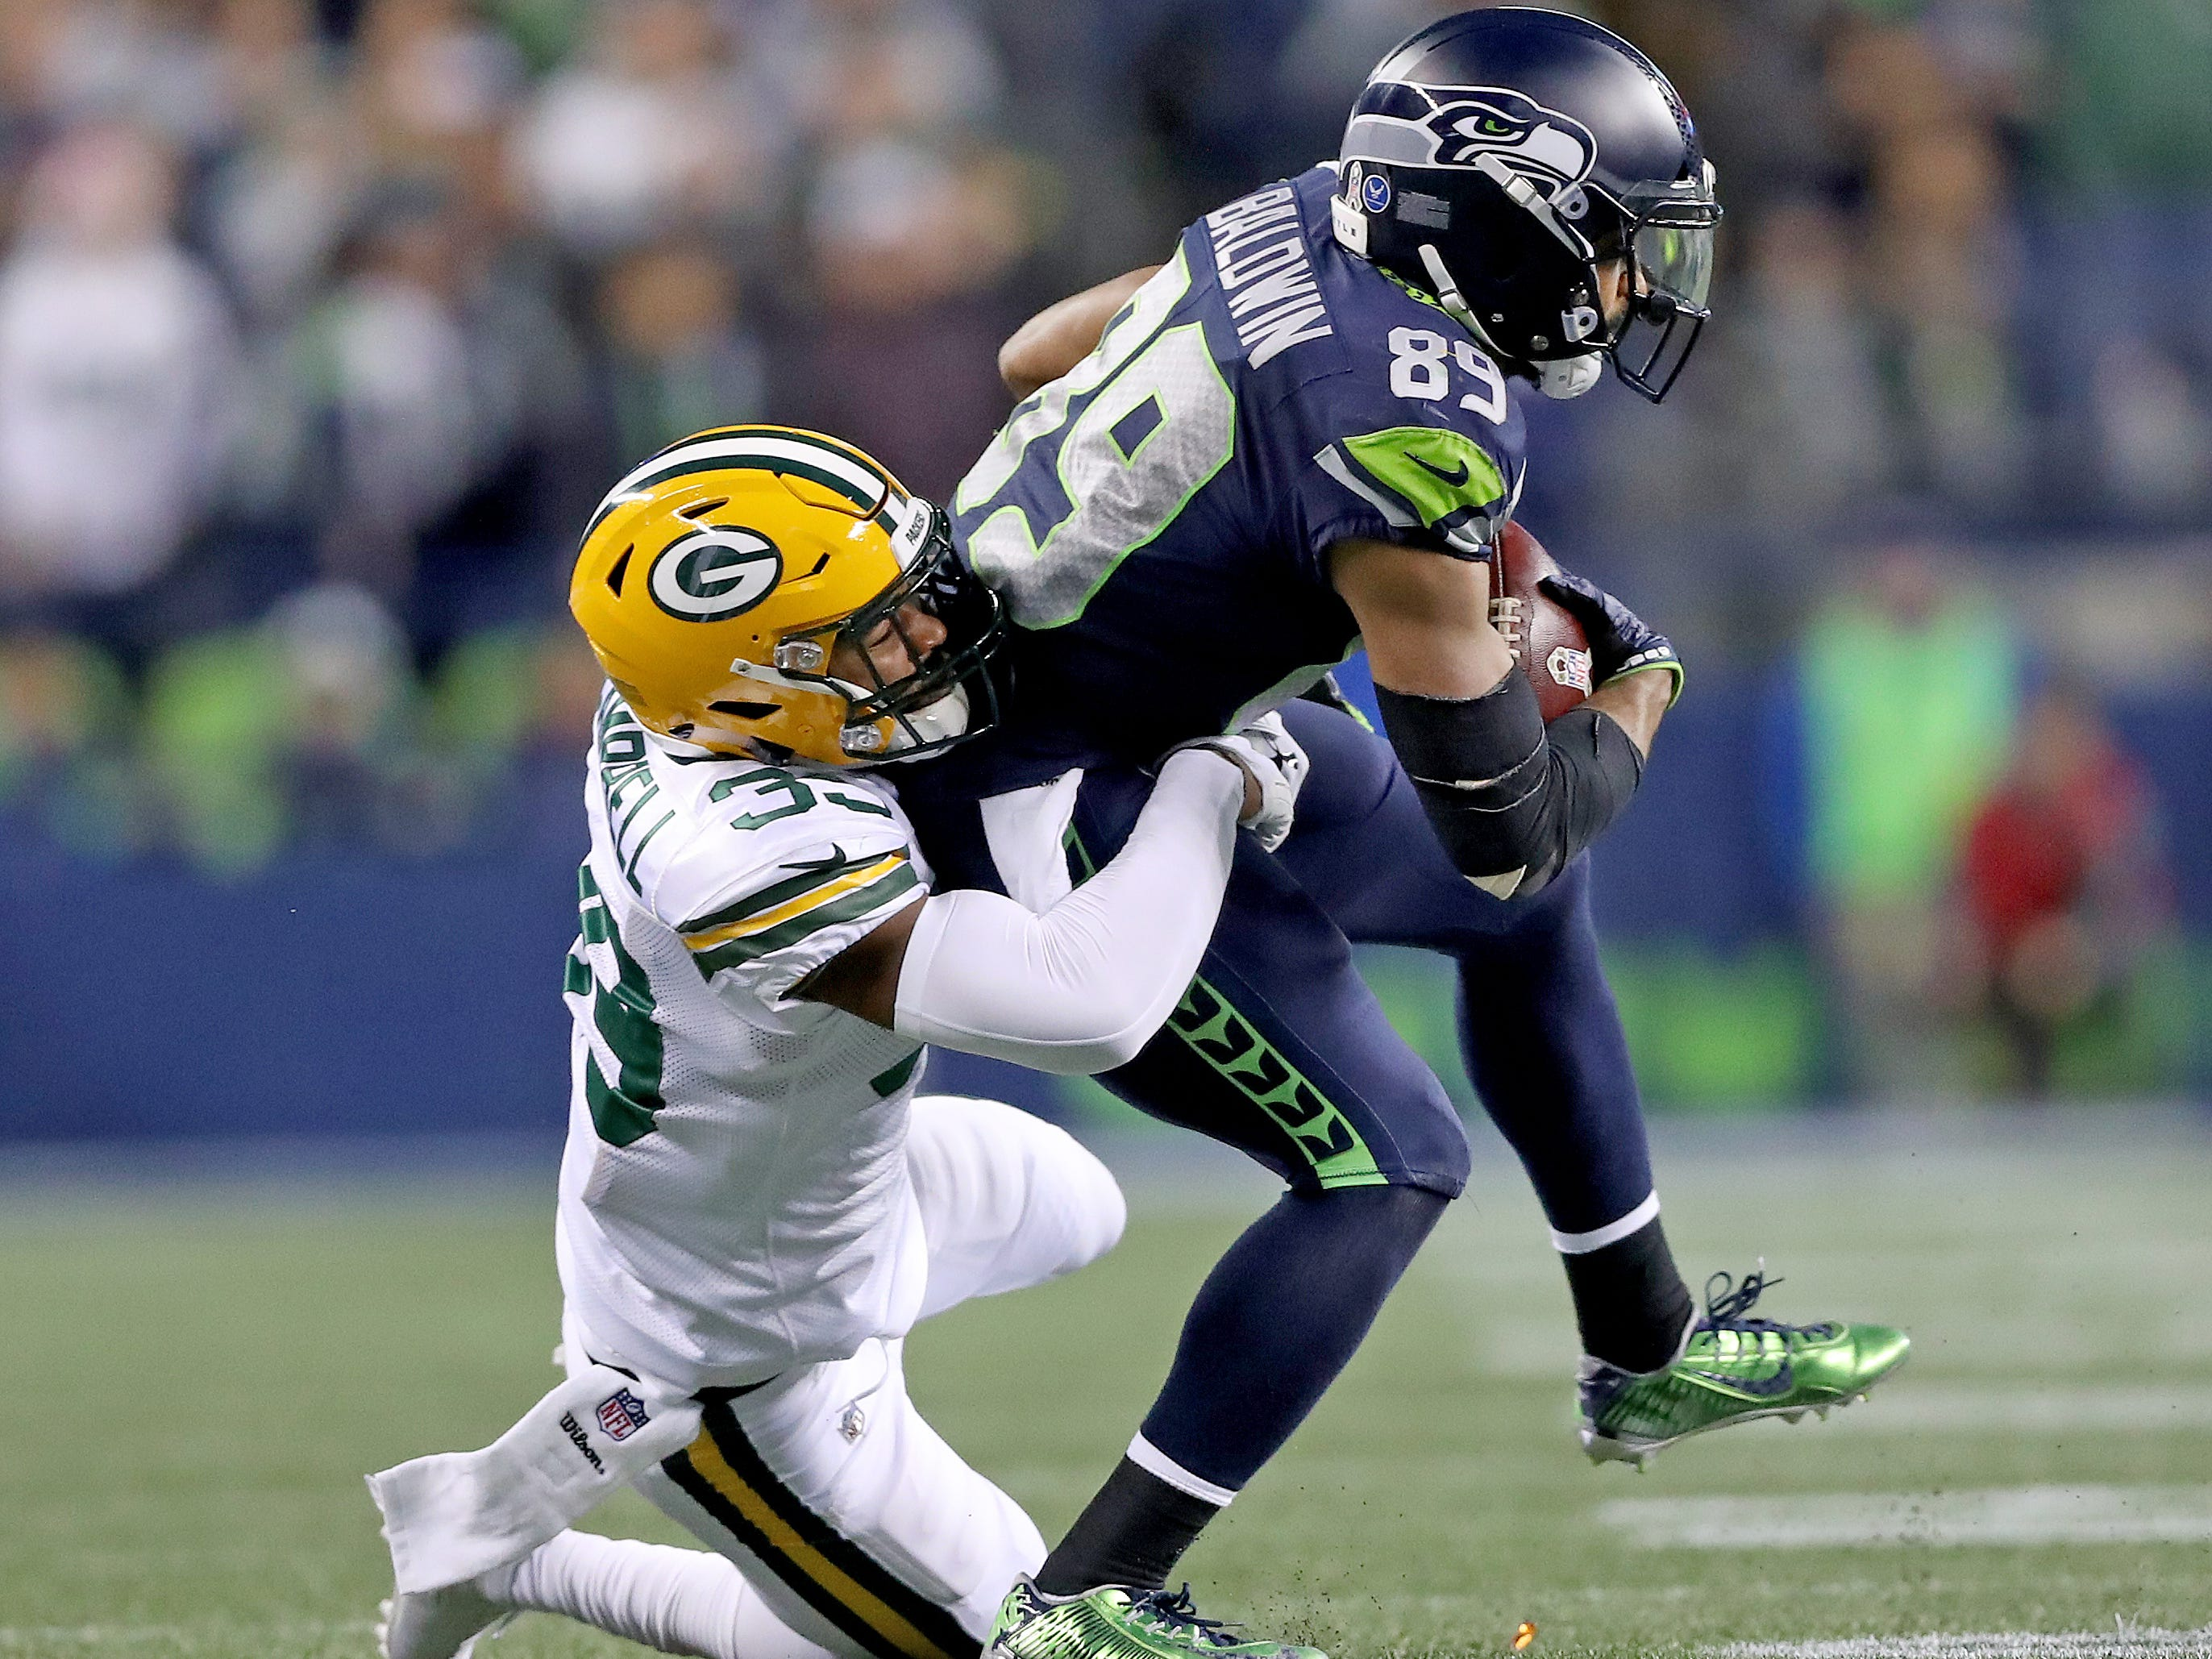 Green Bay Packers defensive back Ibraheim Campbell (39) tackles wide receiver Doug Baldwin (89) against the Seattle Seahawks at CenturyLink Field Thursday, November 15, 2018 in Seattle, WA. Jim Matthews/USA TODAY NETWORK-Wis